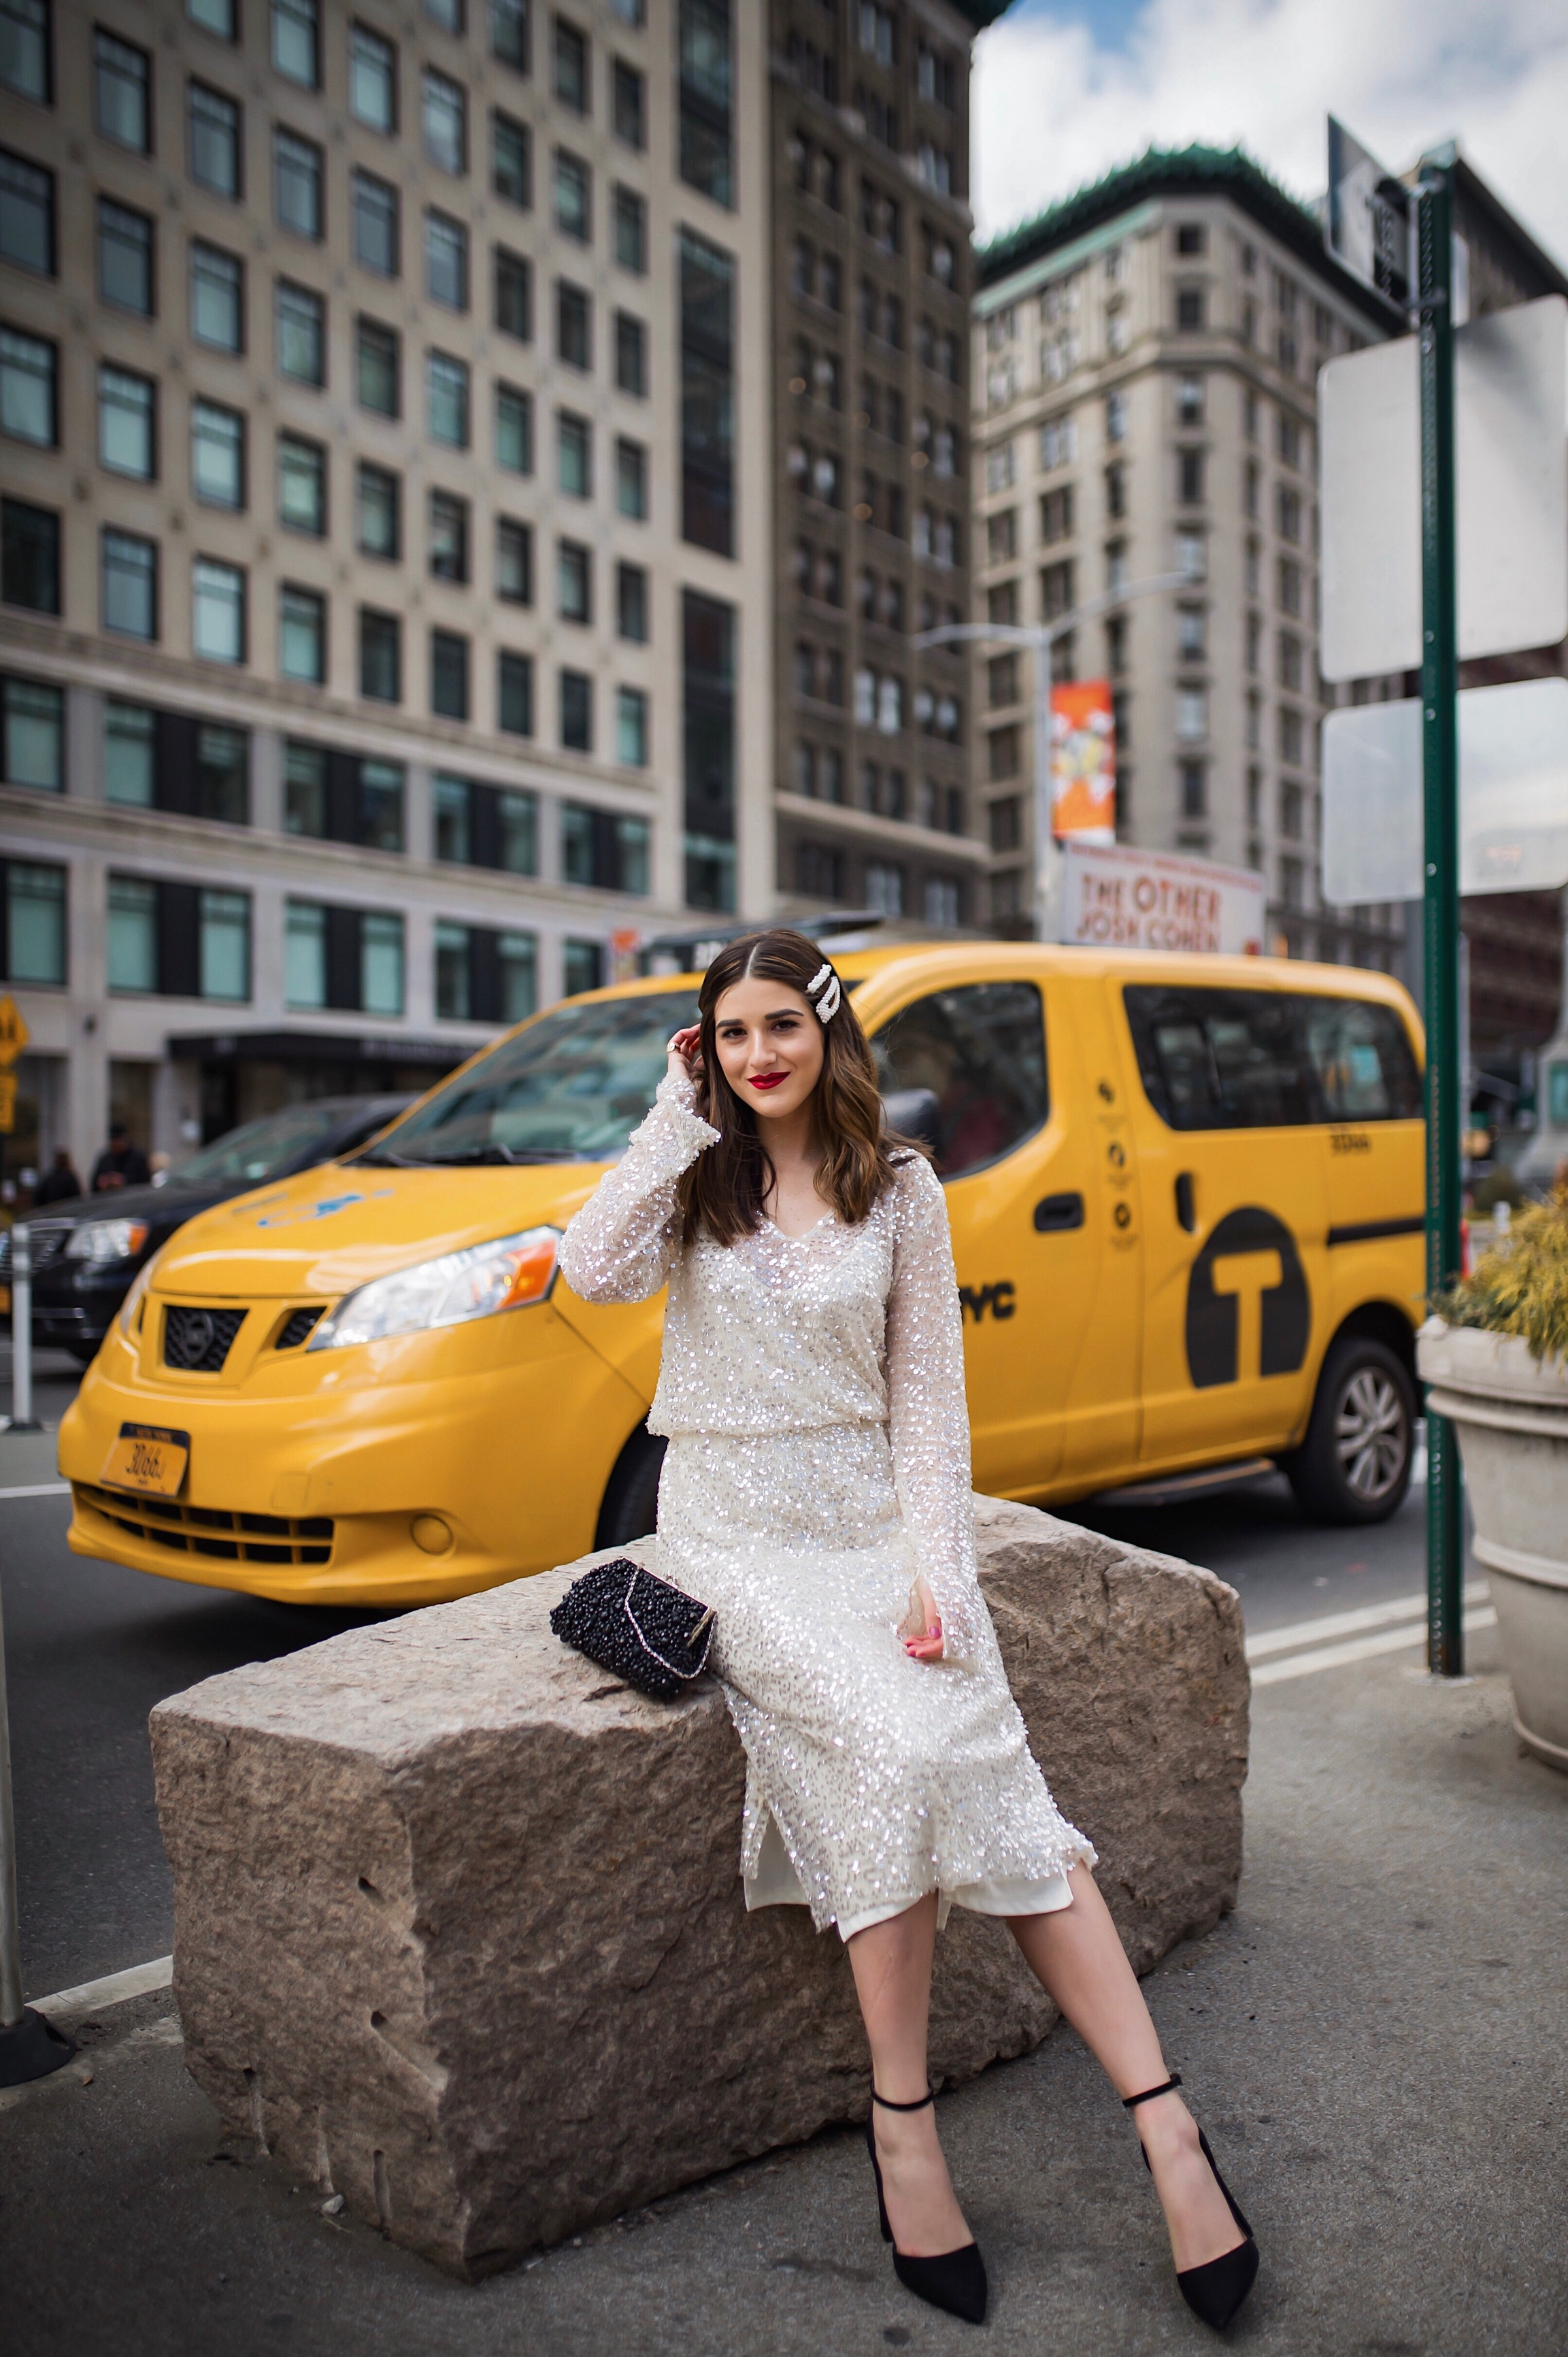 10 Ways To Be An Amazing Houseguest Sequined Midi Dress Black Heels Esther Santer Fashion Blog NYC Street Style Blogger Outfit OOTD Trendy Shopping Girl What How To Wear Beaded Clutch Pearl Hair Clips Zara Asos Taxi  Shot Photoshoot Inspo Bag Pretty.JPG